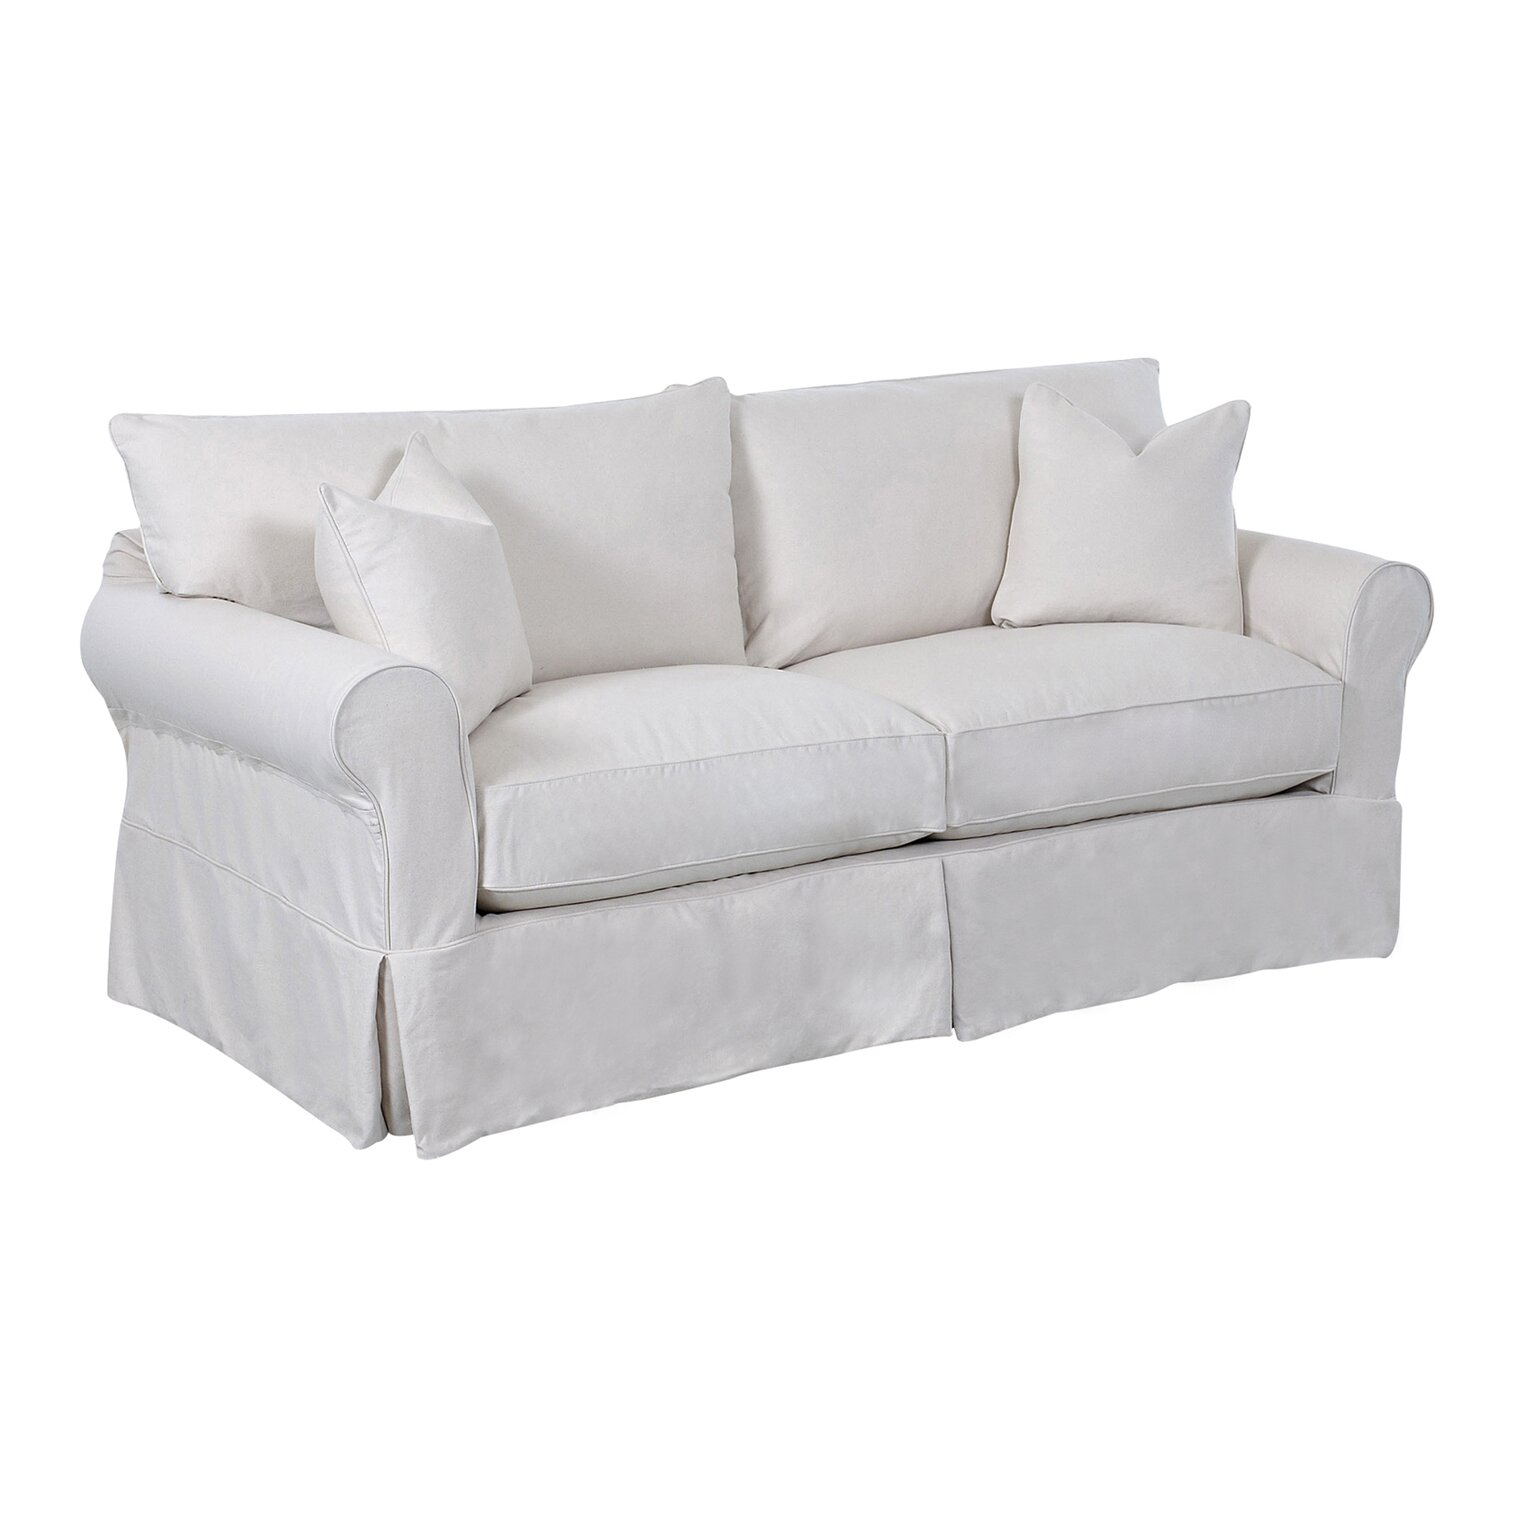 Wayfair Custom Upholstery Felicity Sofa Reviews Wayfair